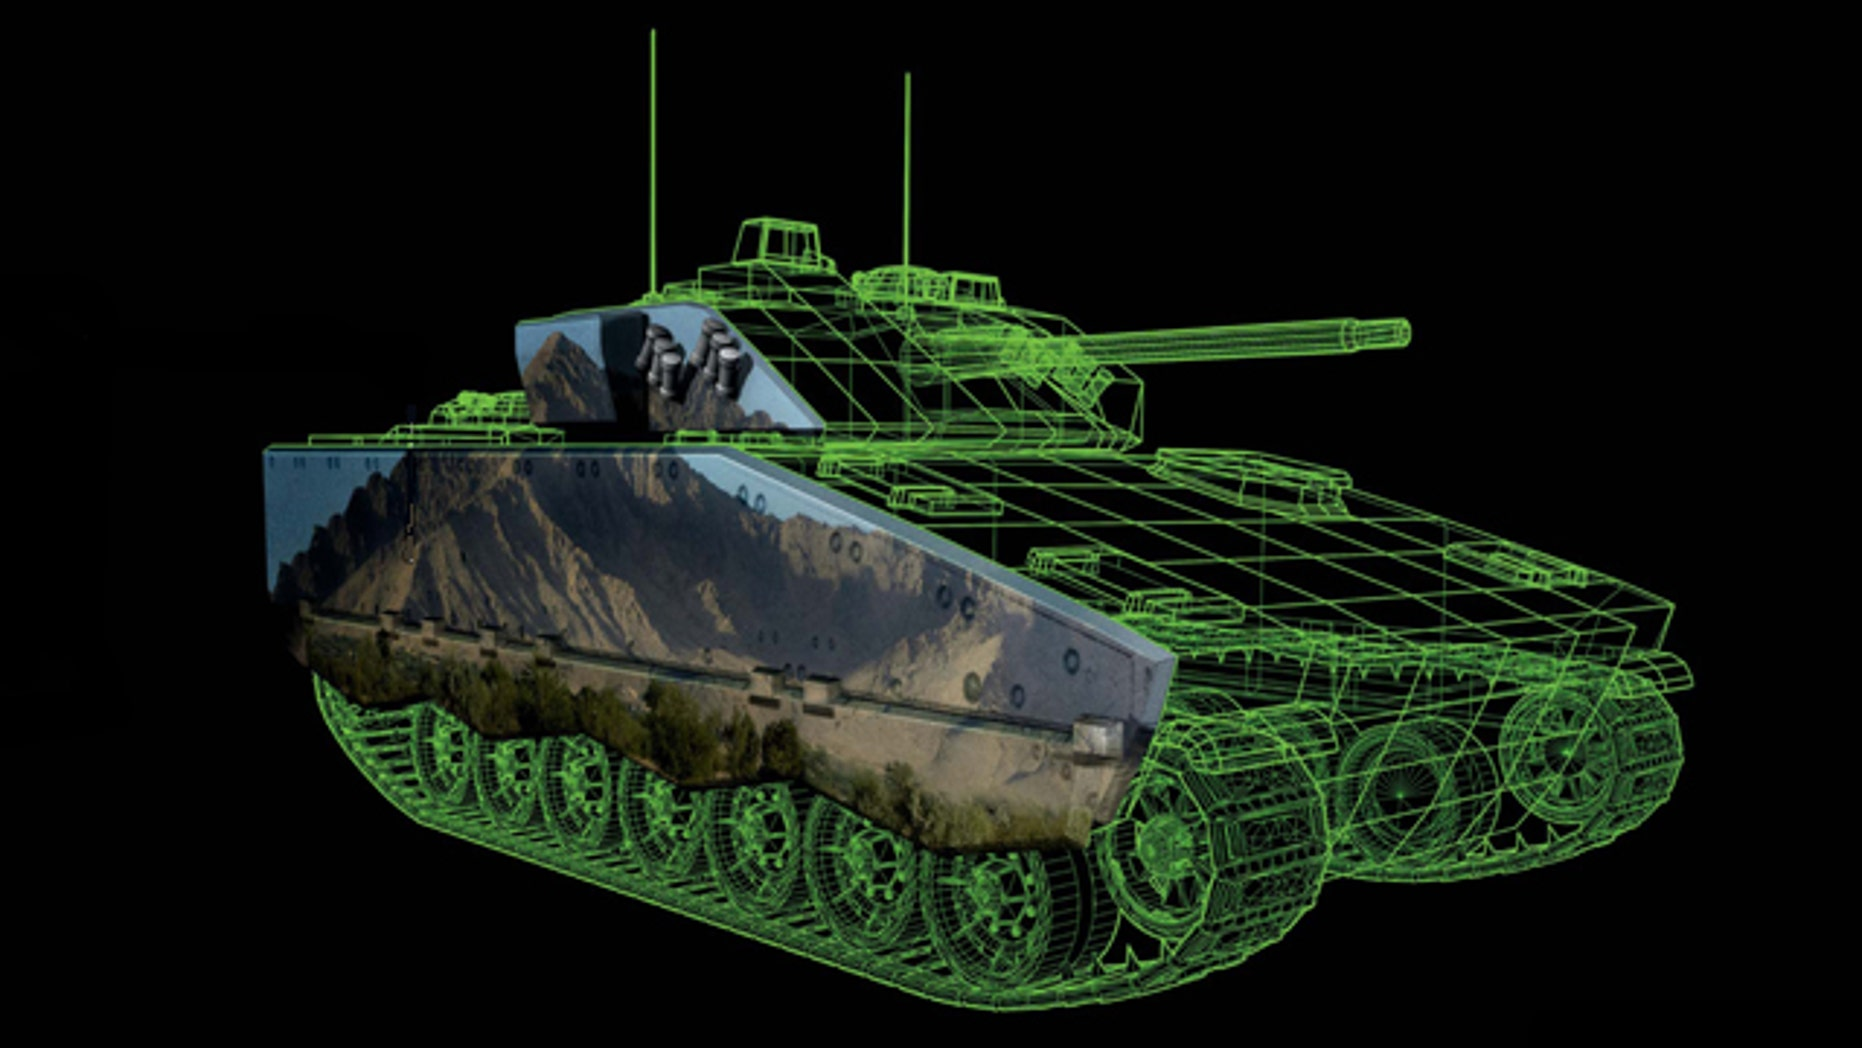 """In BAE Systems """"eCamouflage"""" concept, images are projected on the hull of a combat vehicle that change in concert with the environment -- making the vehicle invisible."""